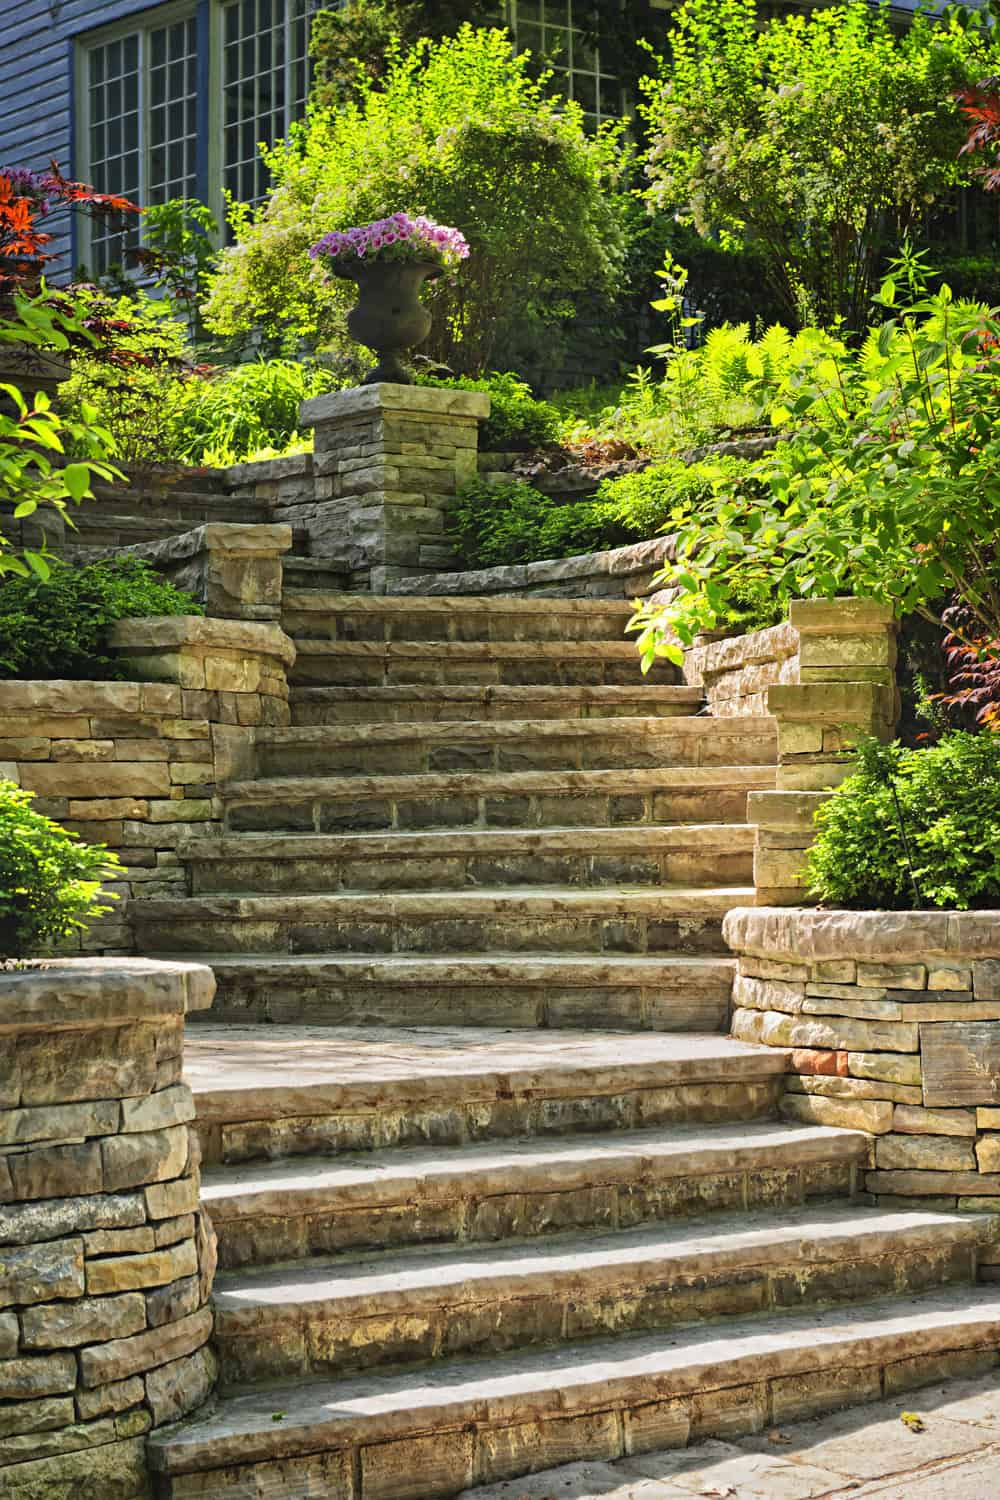 How do you want your garden steps to look